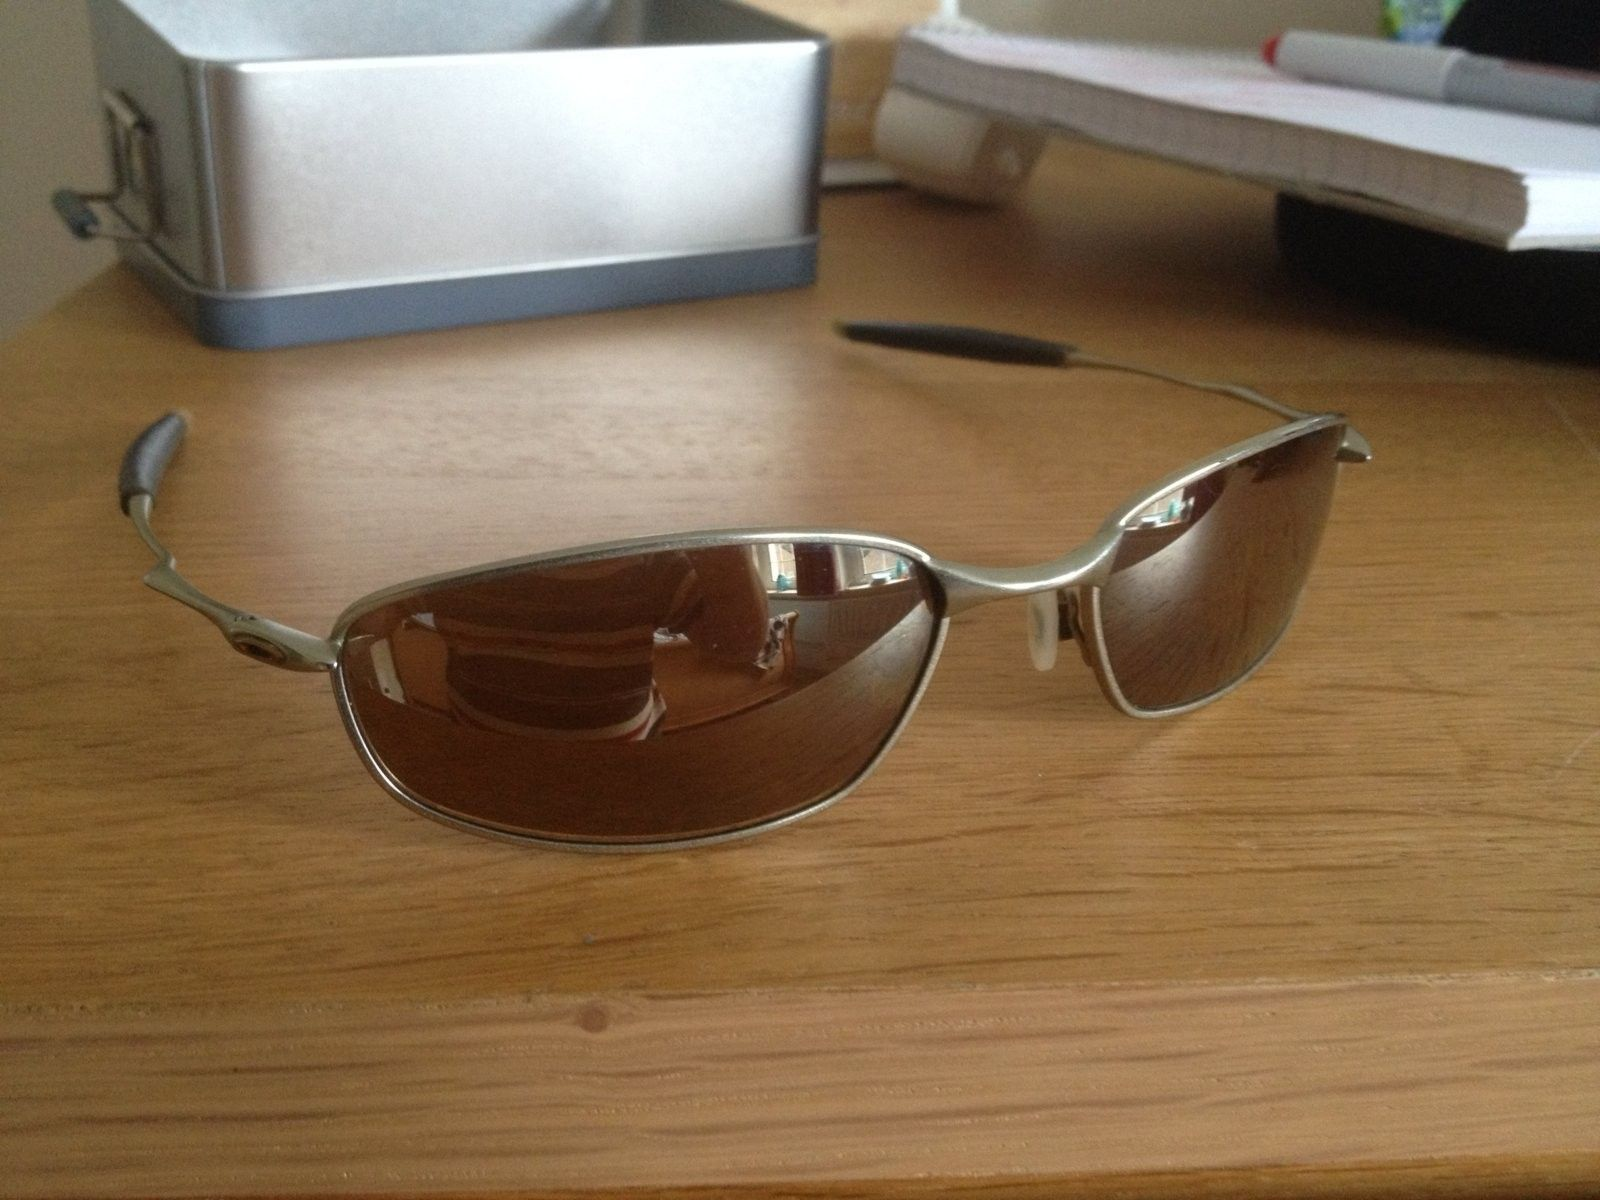 Help to save long serving sunnies - image.jpeg